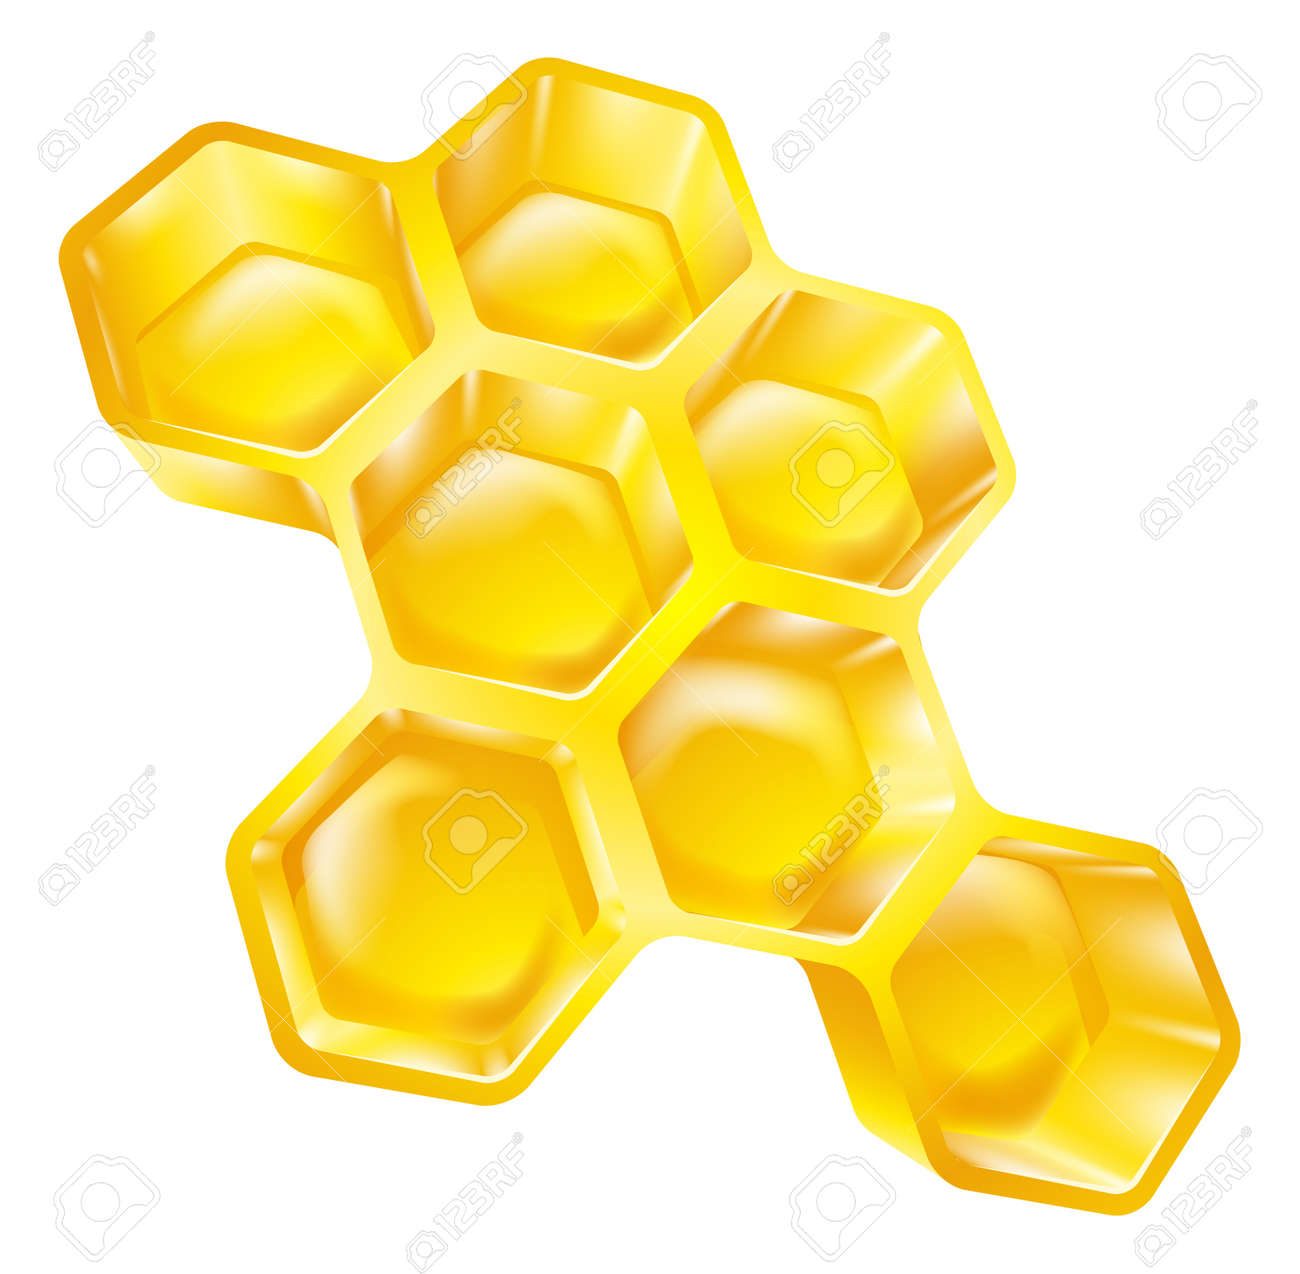 Illustration Of Bees Wax Honeycomb Full Delicious Honey Stock Vector